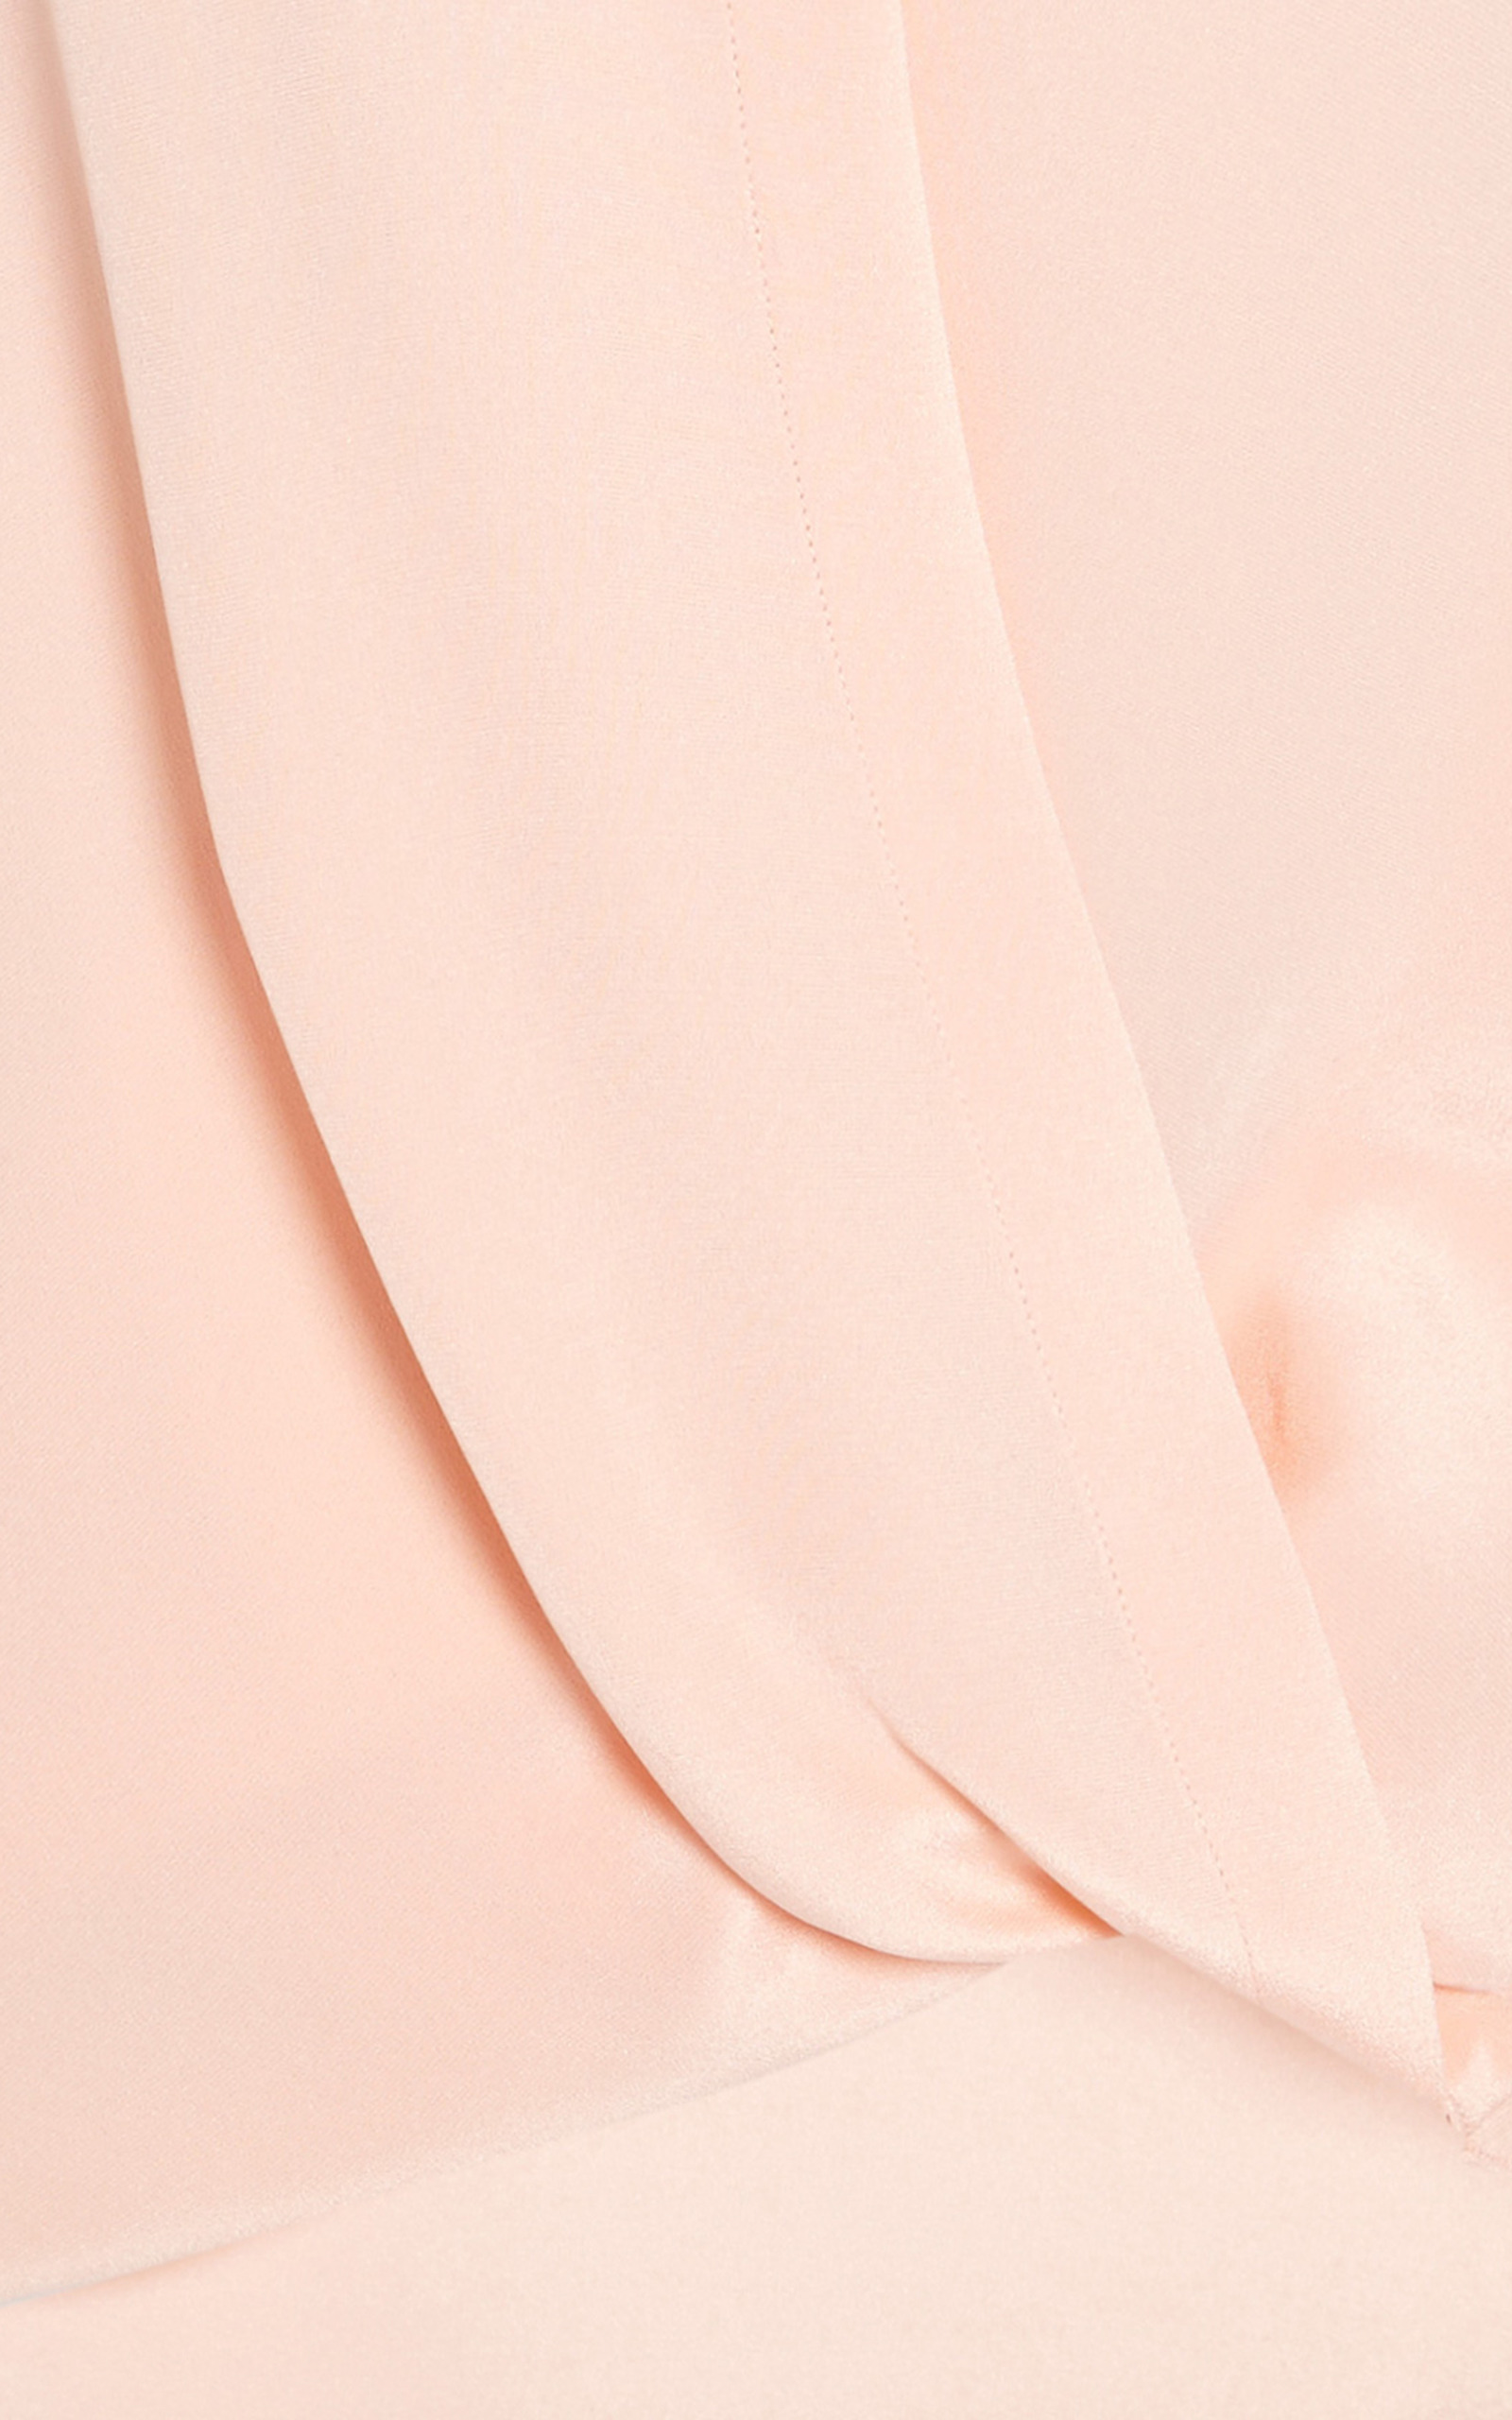 69b951ba79214 3.1 Phillip LimSoftly Draped Blouse With Tucked In Collar In Peach Puff.  CLOSE. Loading. Loading